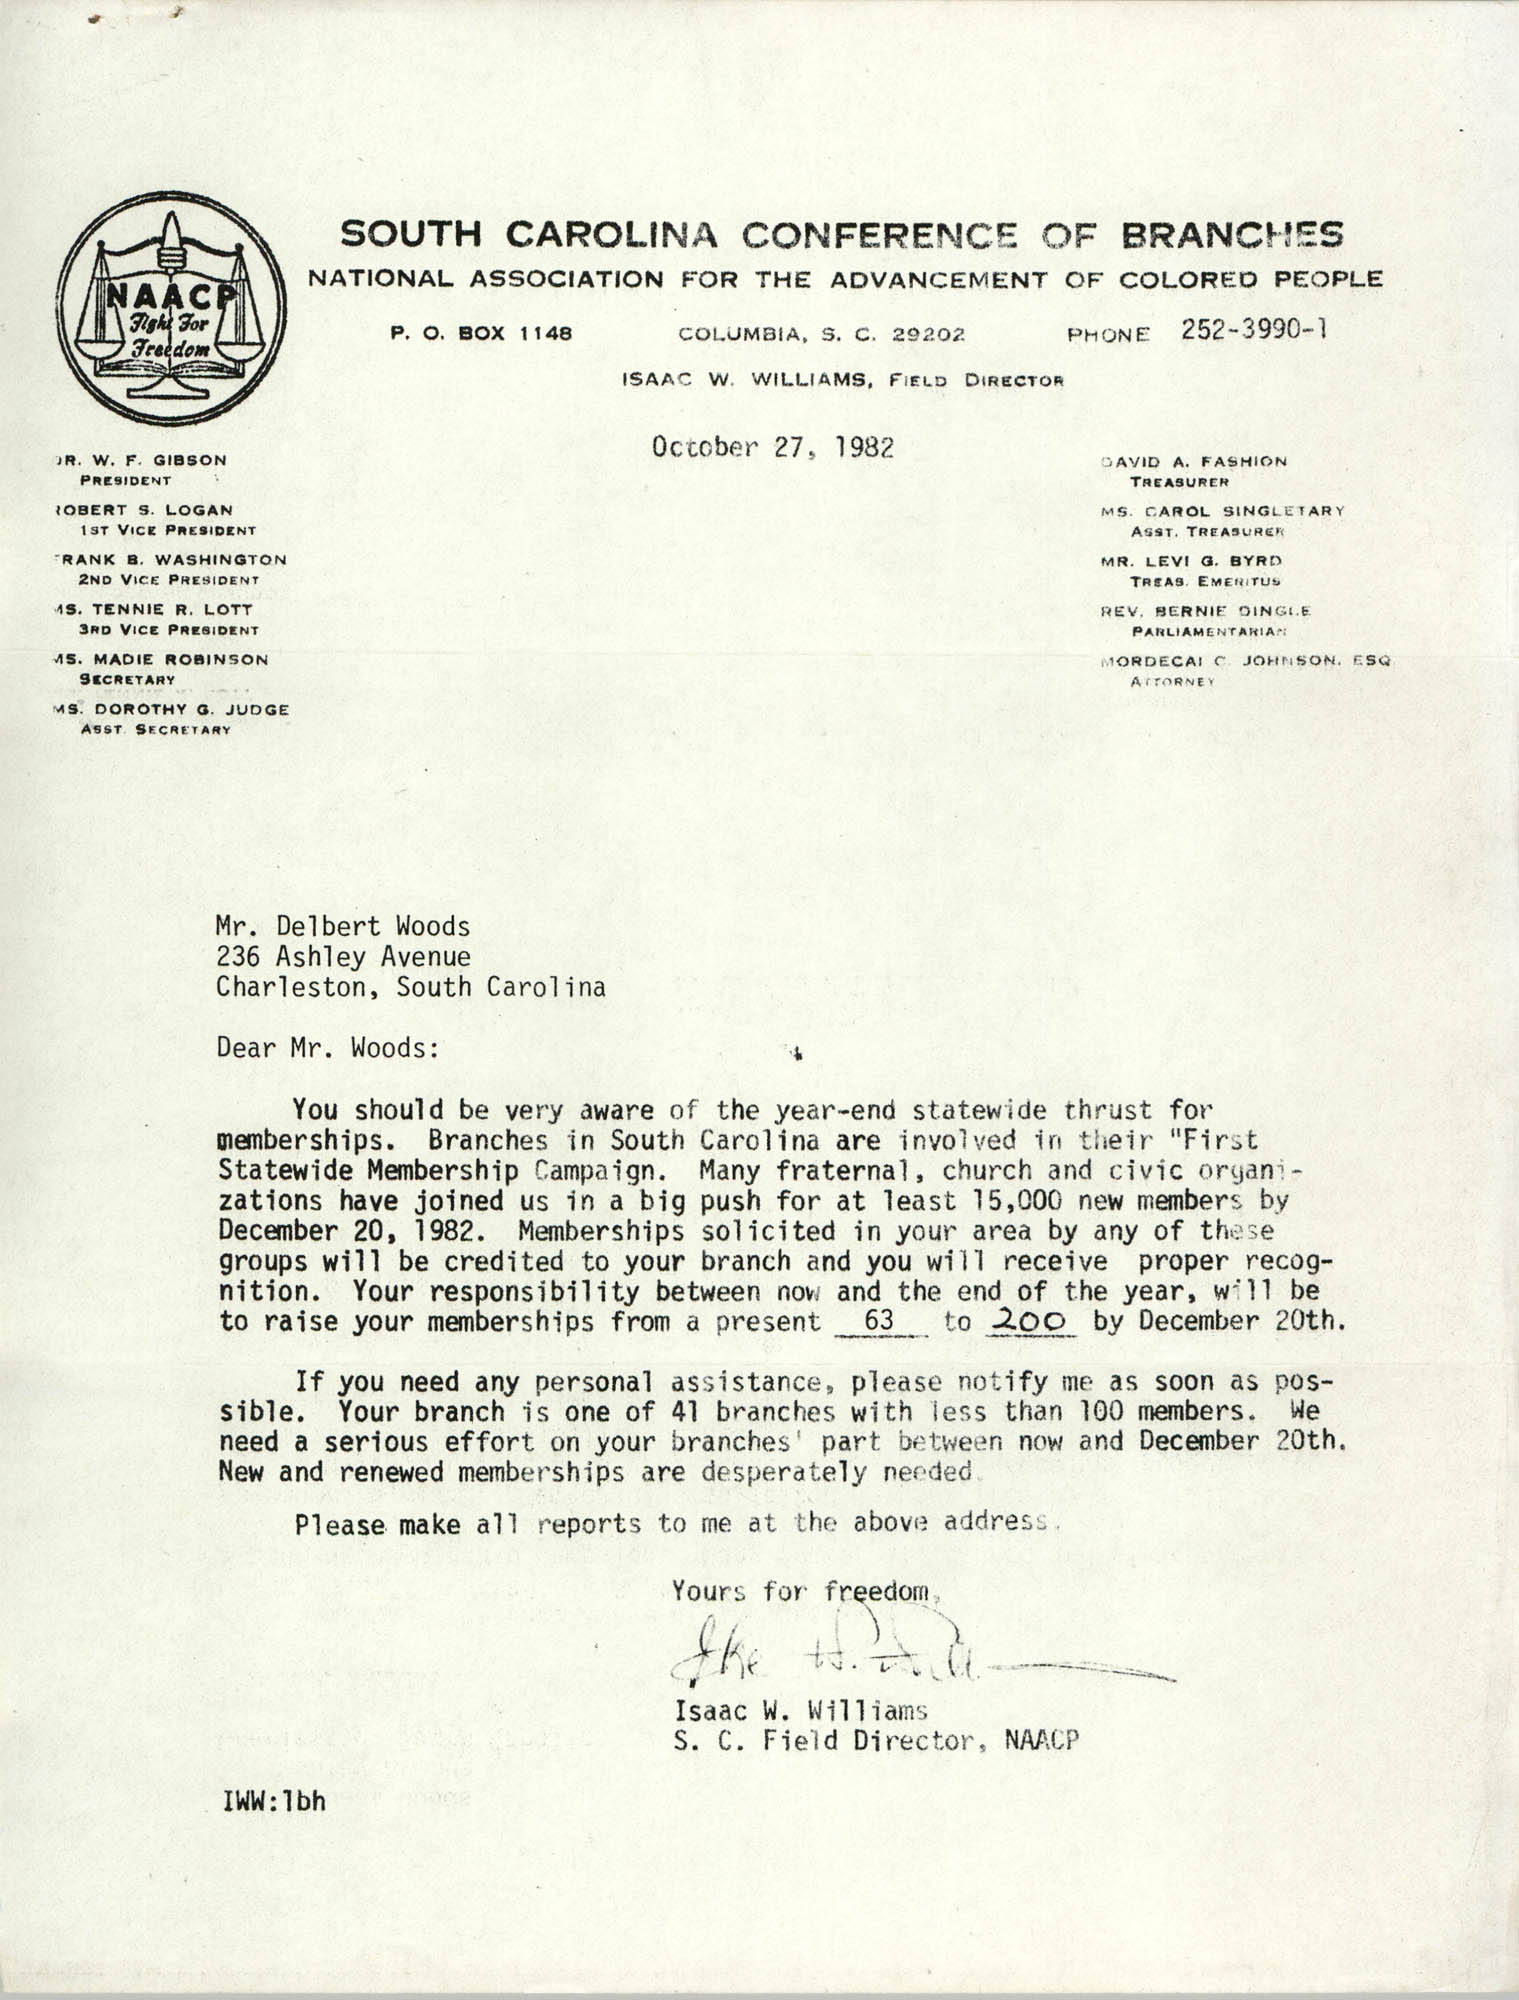 Letter from Isaac W. Williams to Delbert Woods, October 27, 1982